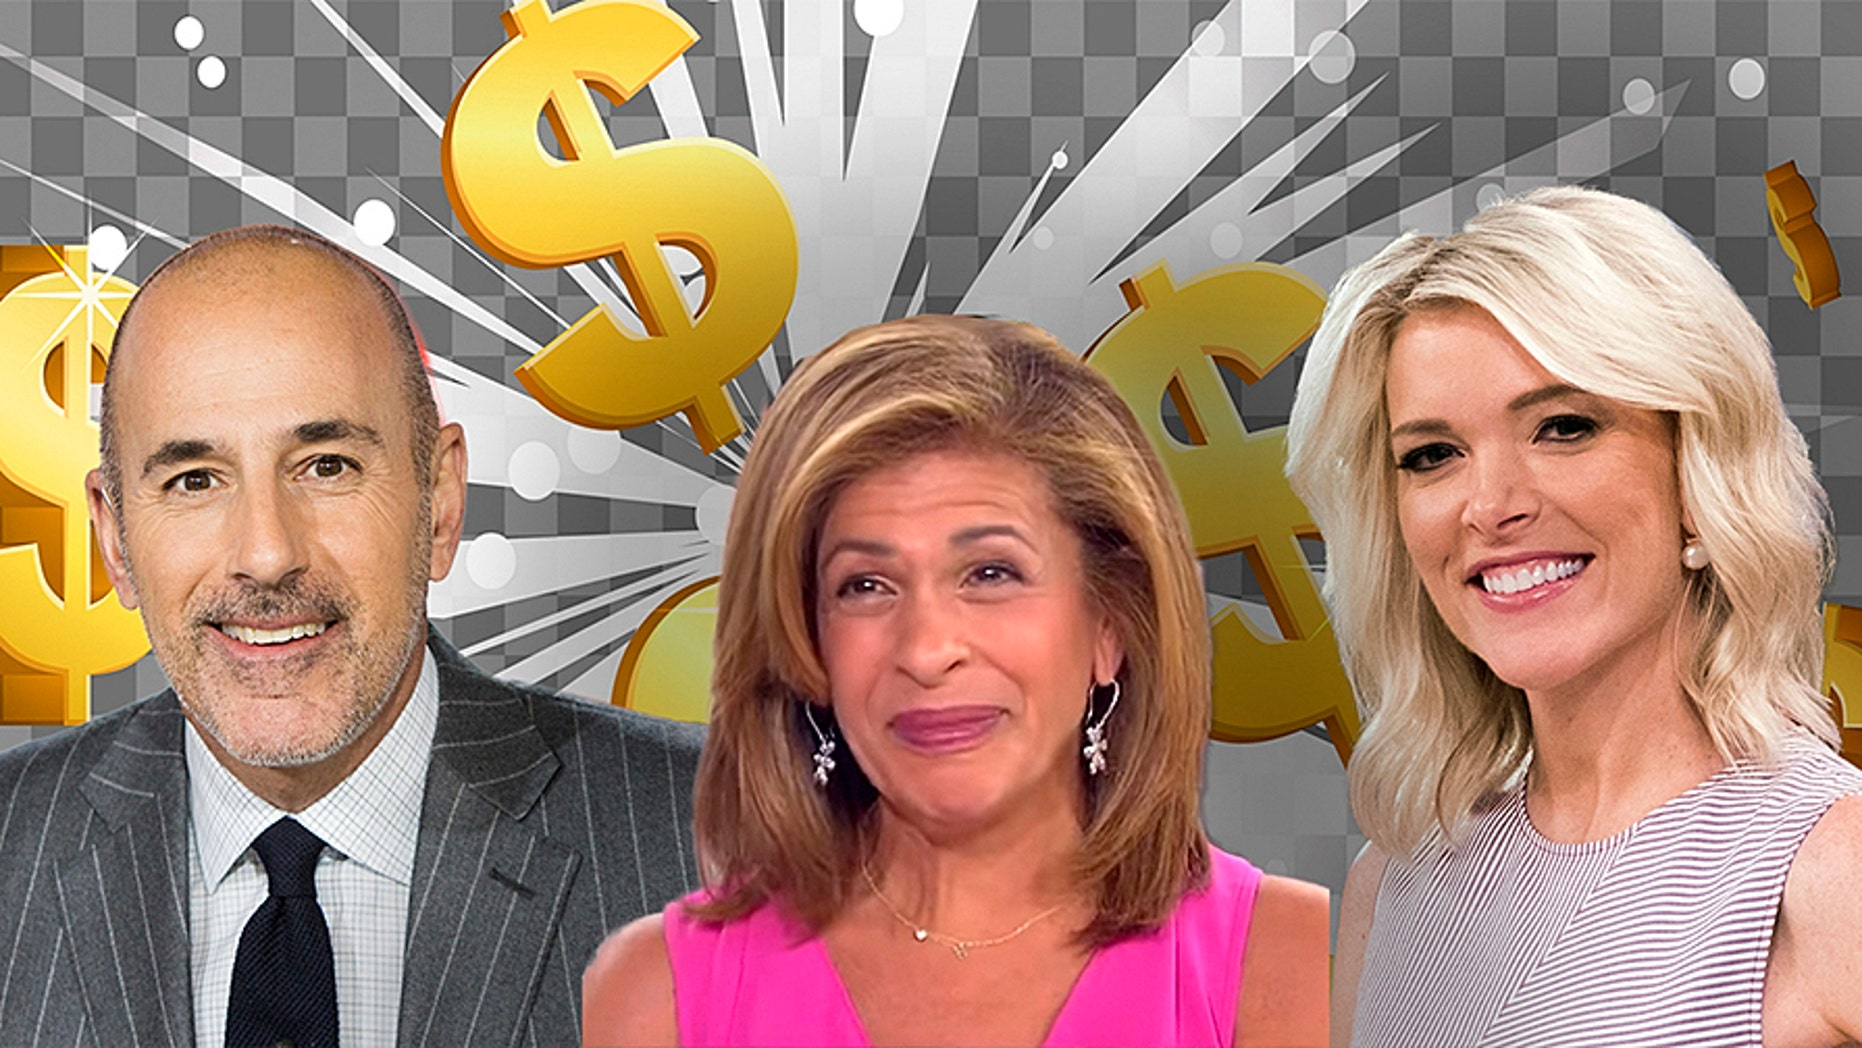 Hoda Kotb is reportedly being paid millions less per year than her predecessor Matt Lauer and coworker Megyn Kelly.